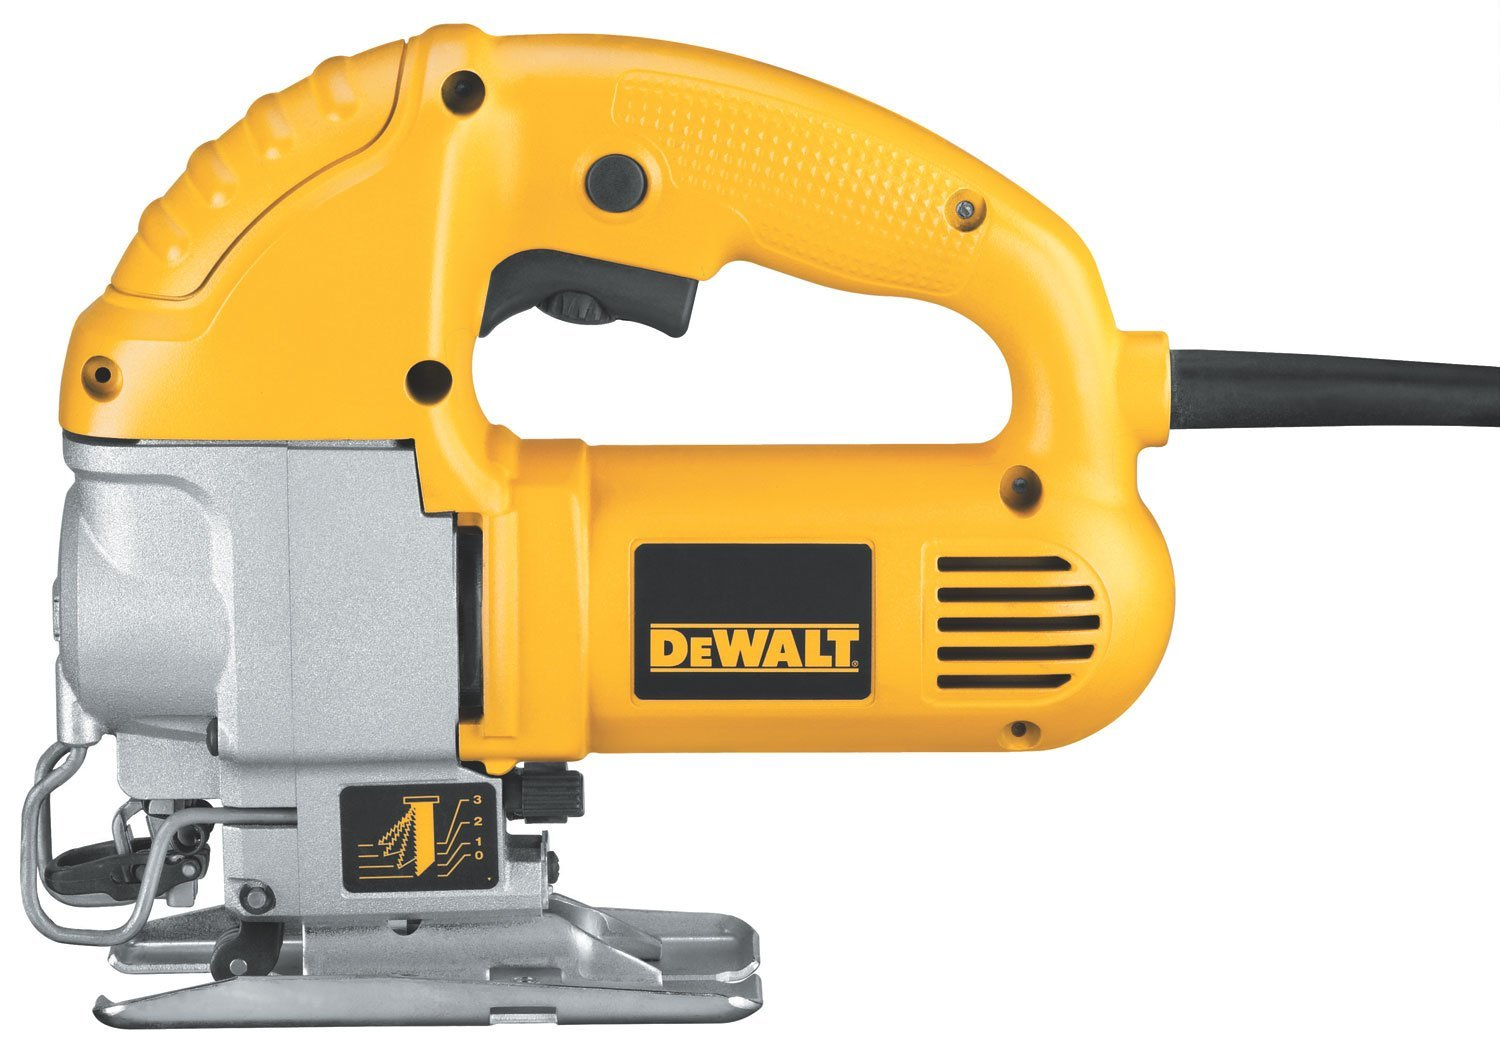 What is the best dewalt jigsaw dewalt 317k compact jig saw kit greentooth Image collections